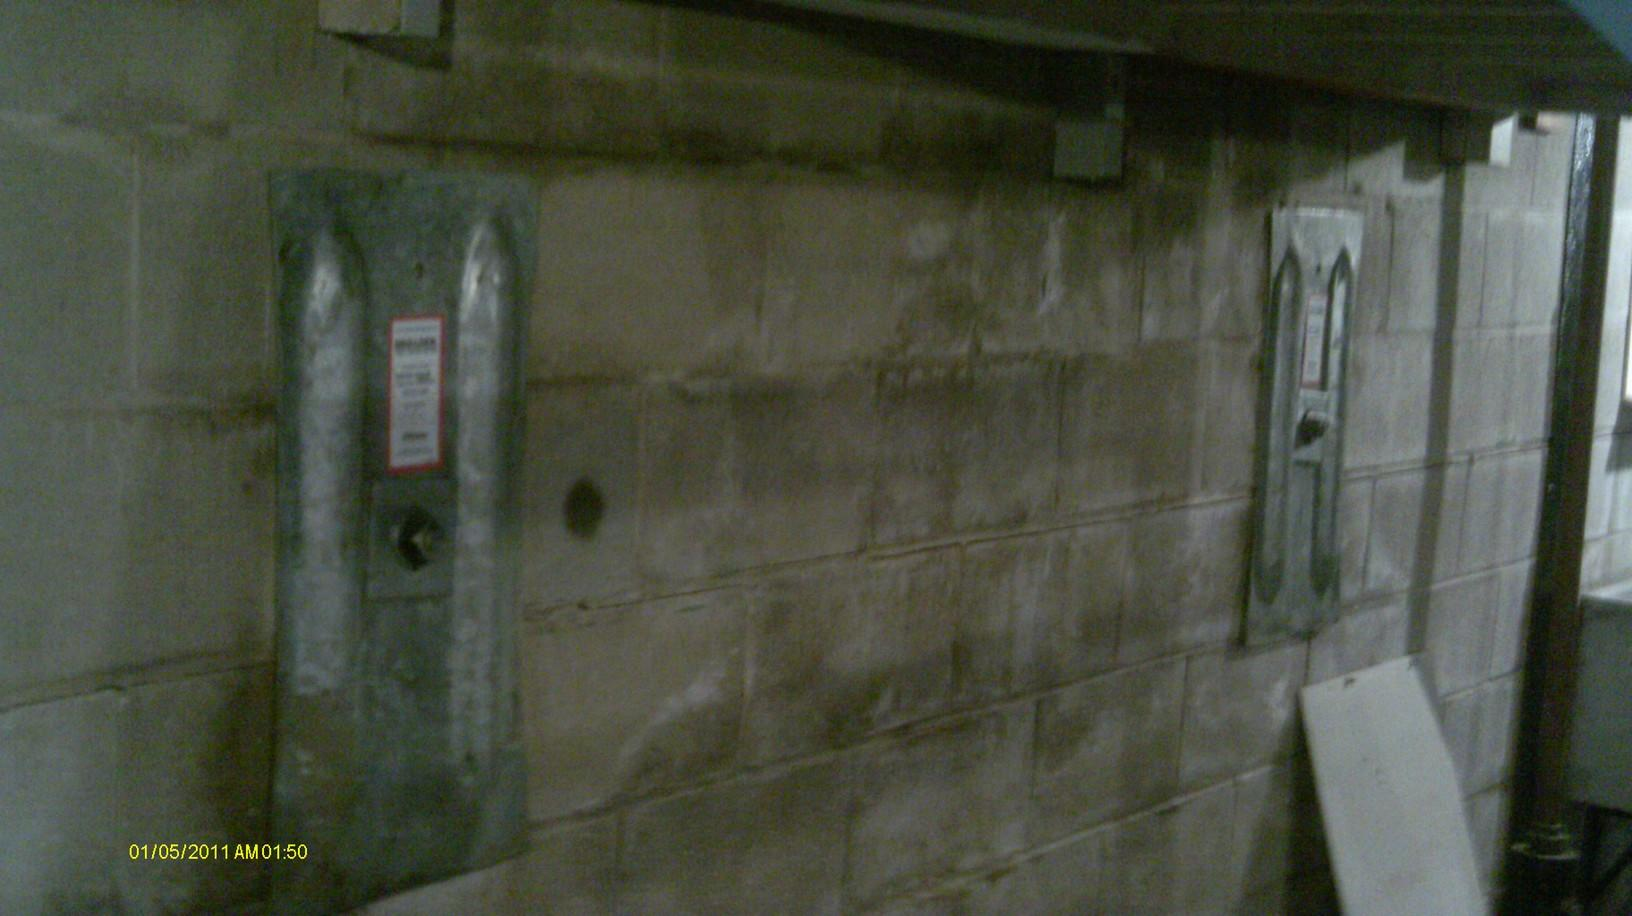 Wall anchors installed to prevent further bowing.